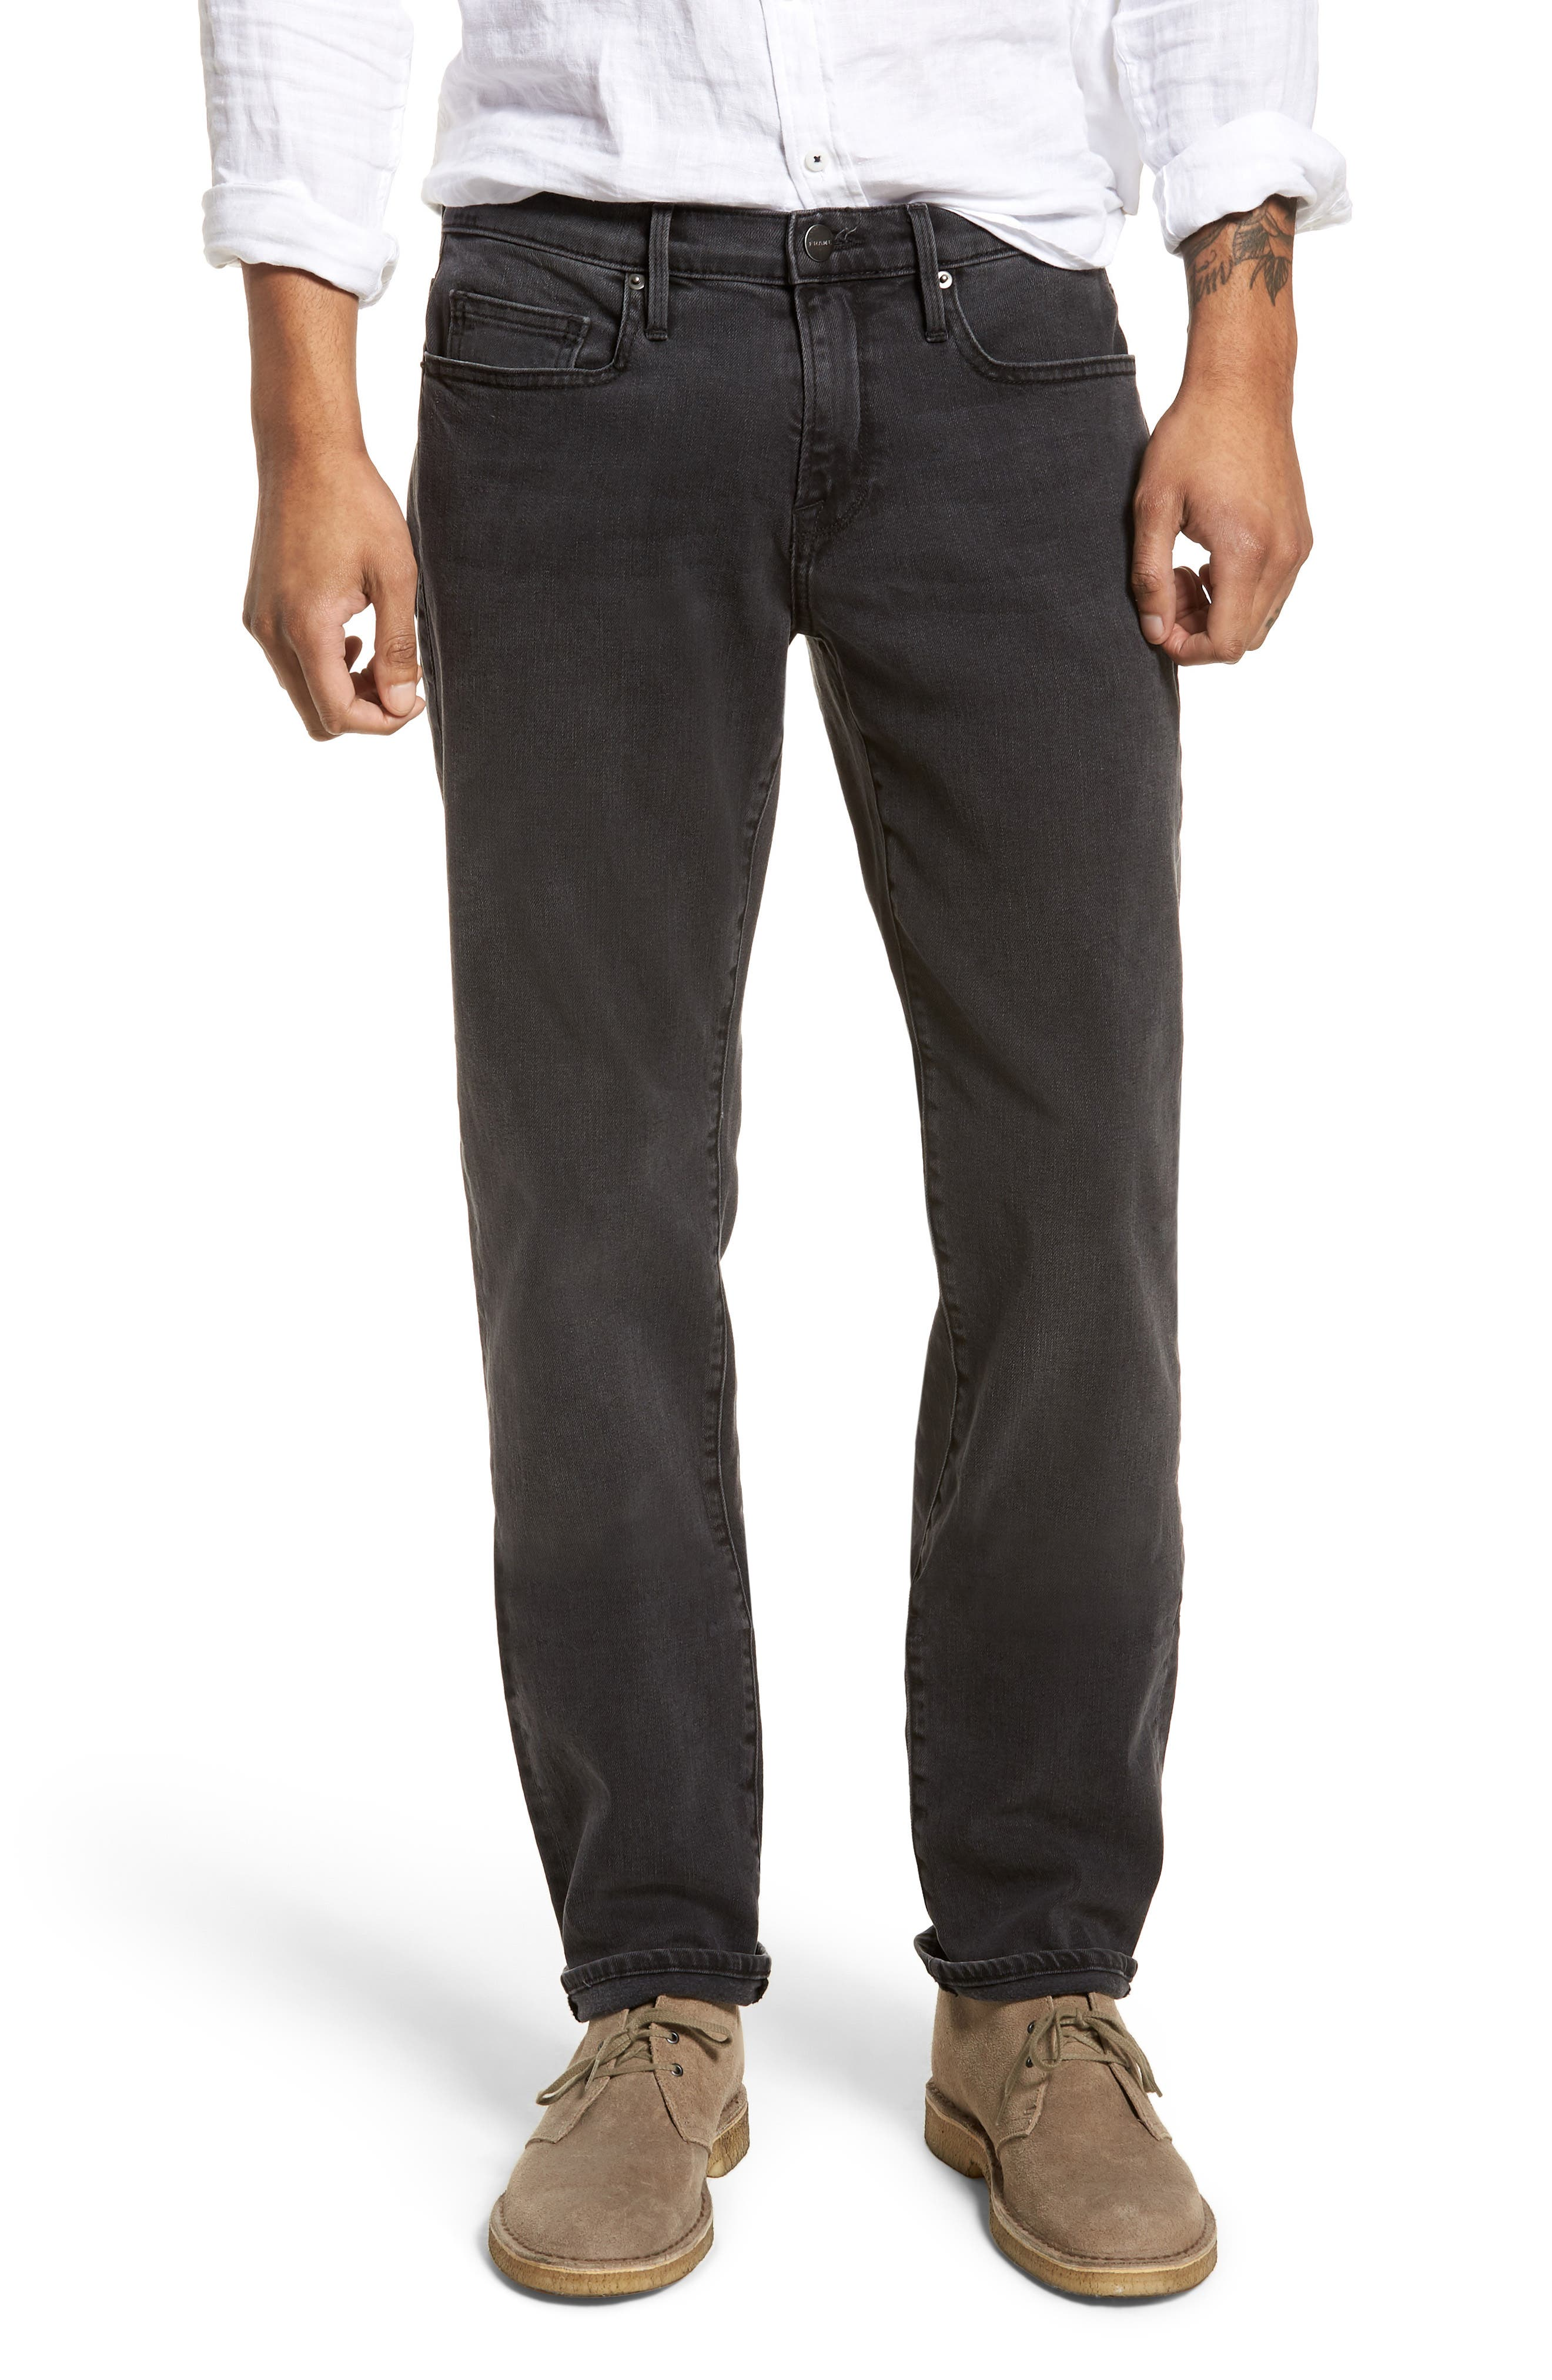 L'Homme Straight Leg Jeans,                         Main,                         color, FADE TO GREY